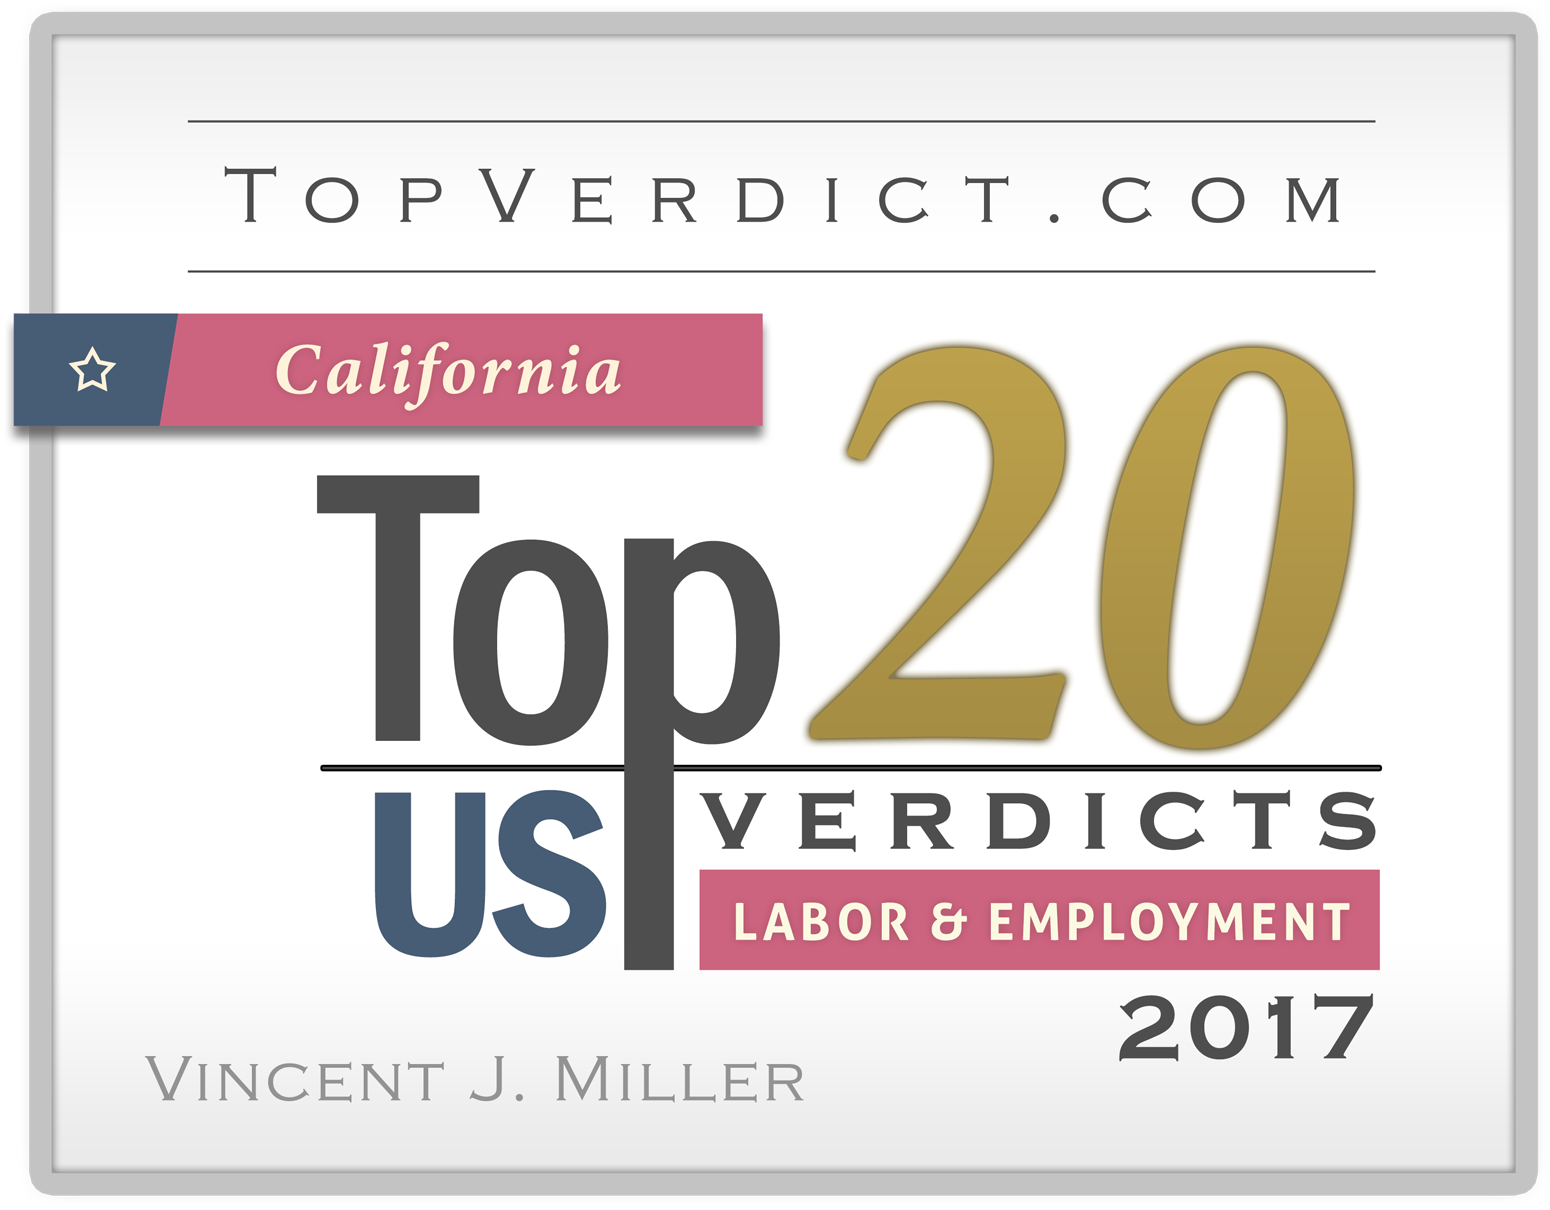 2017-top20-labor-verdicts-ca-vincent-miller